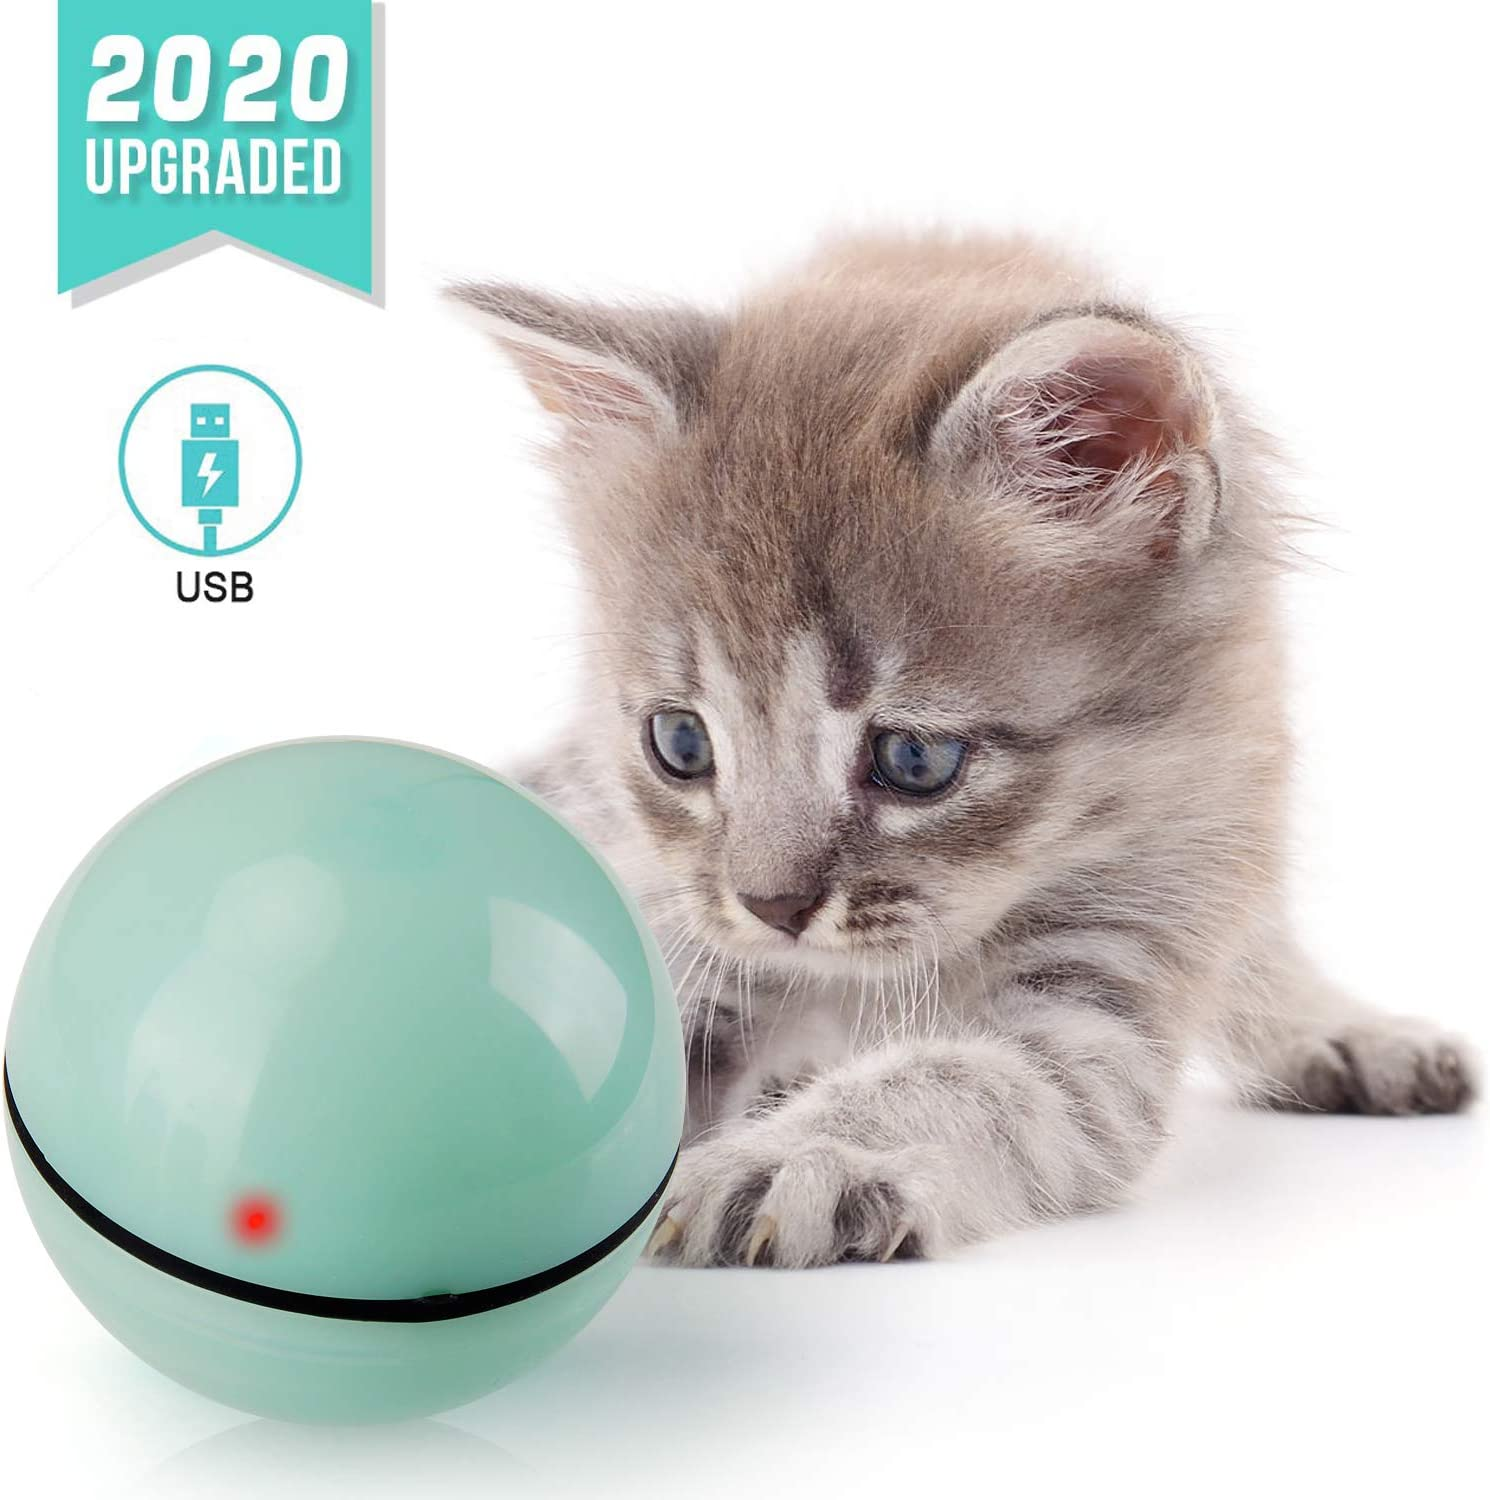 360 Degree USB Rechargeable Motion Red LED Light for Cat//Kitty//Kitten//Pets Exercise Chase Play Cat Toy Balls Cat Toys for Indoor Cats Interactive Cat Toy Ball Pet Toys